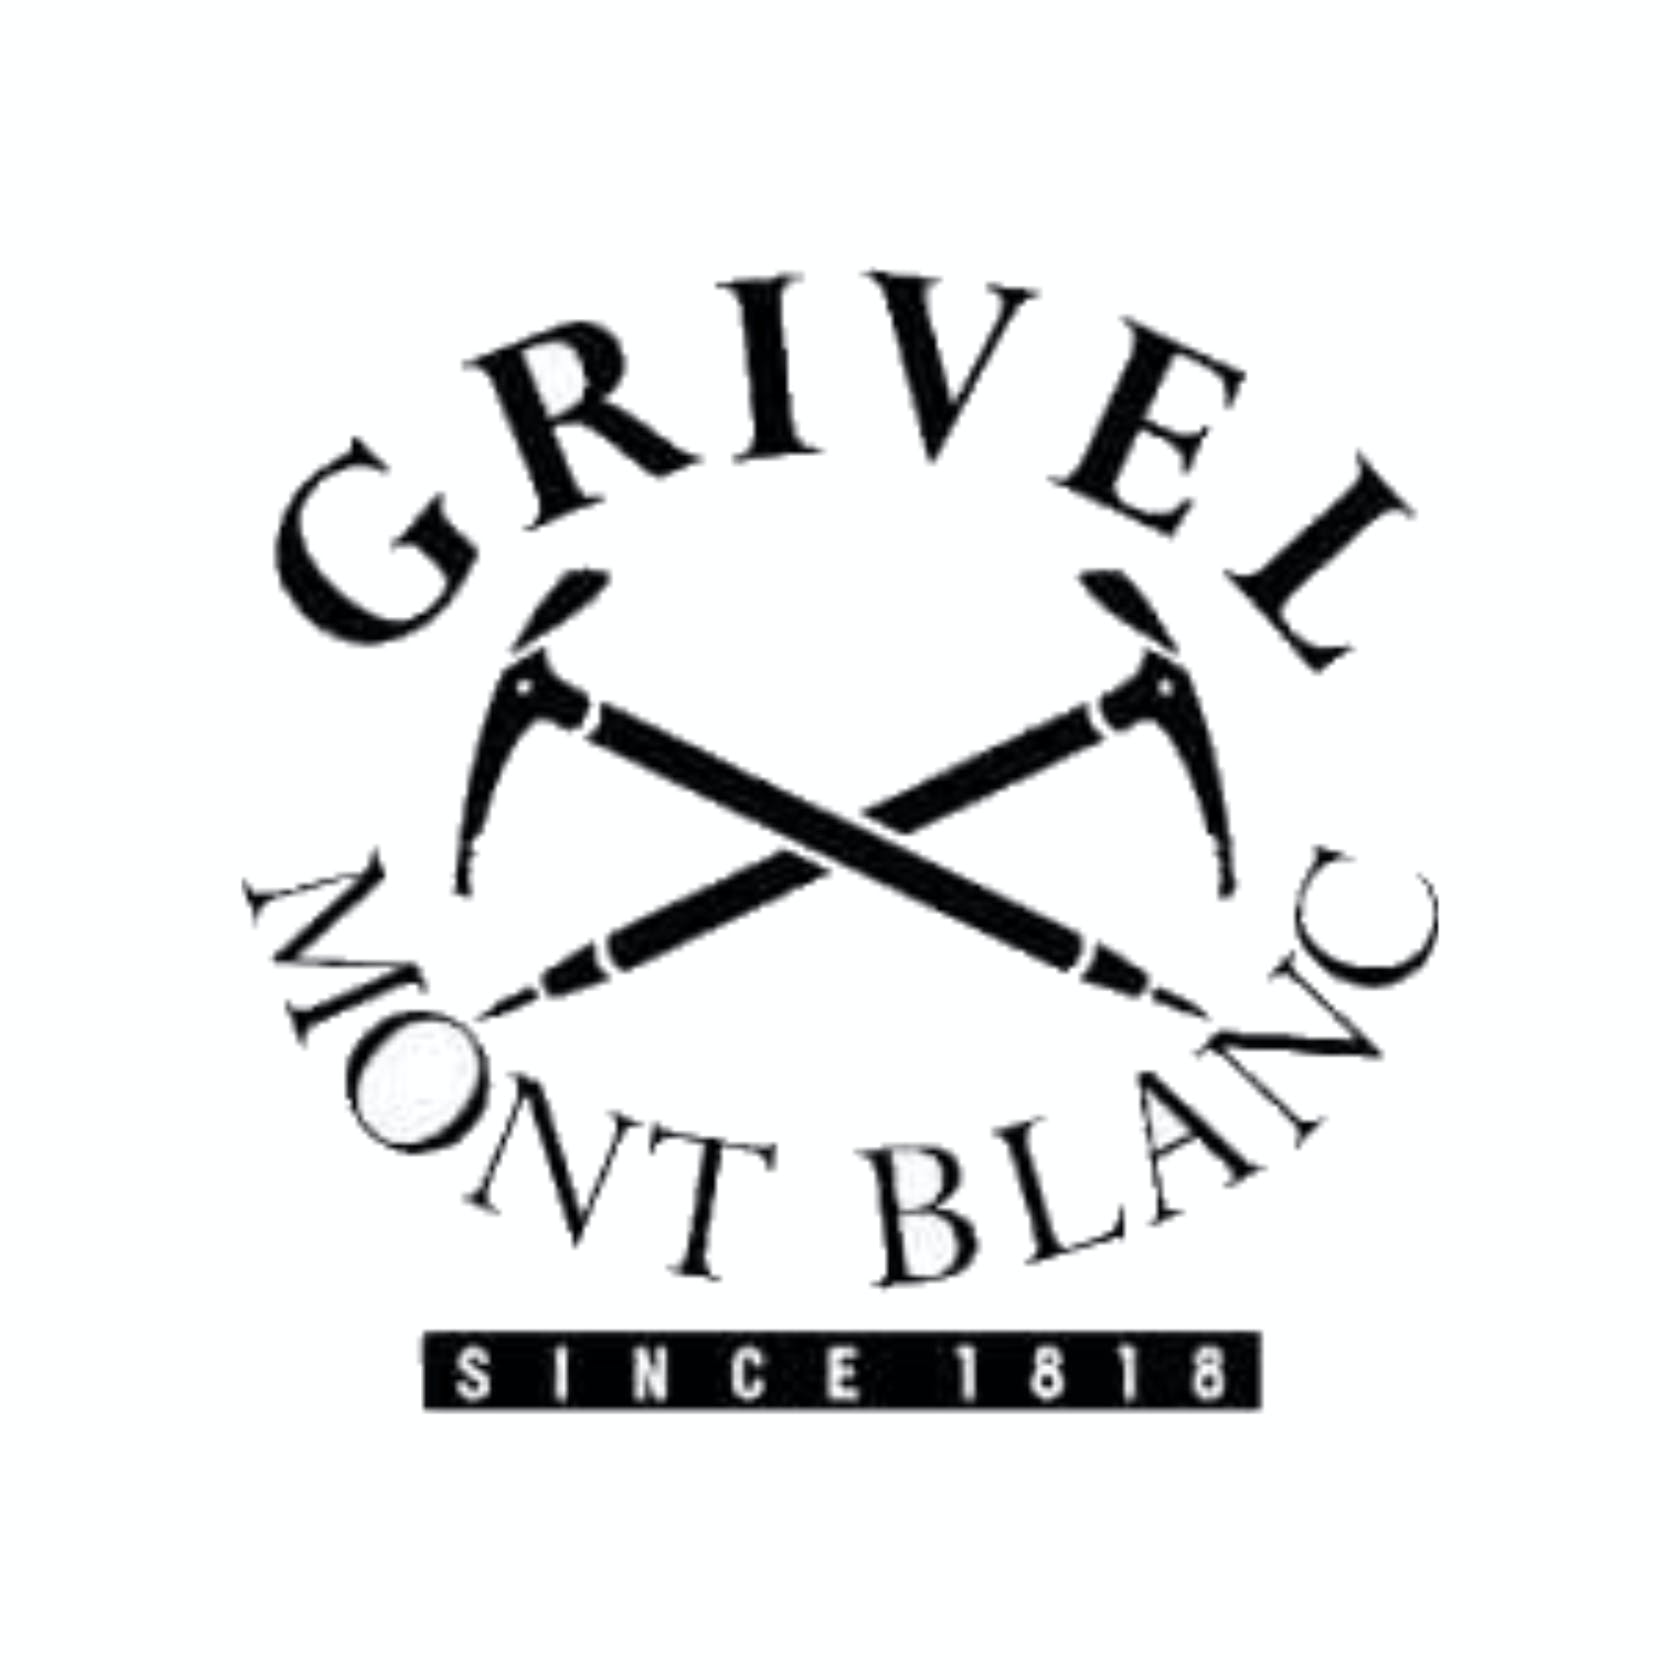 grivel onlineshop